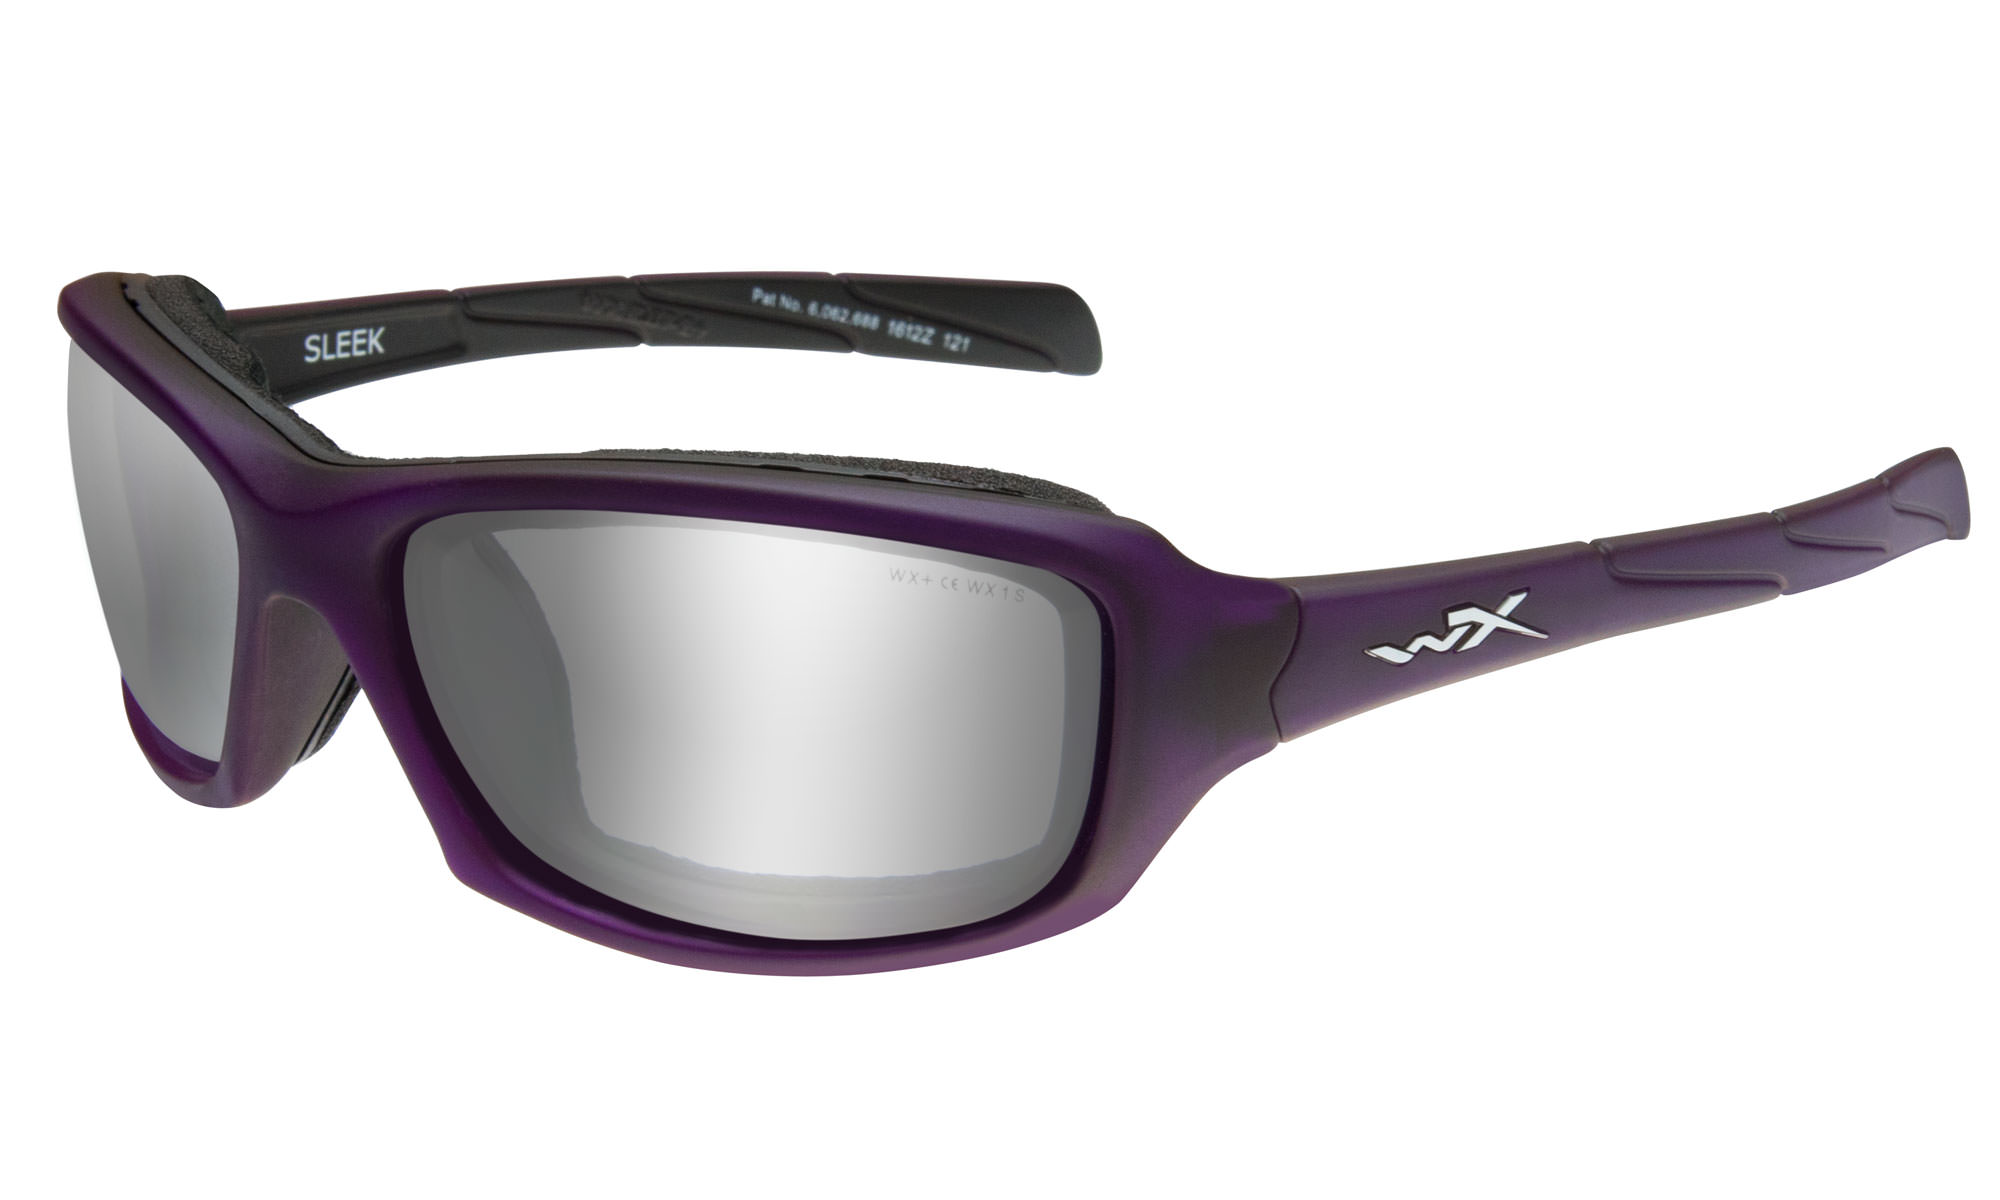 f0c0b94a2c Wiley-X WX Sleek Matte Violet with Silver Flash Lenses